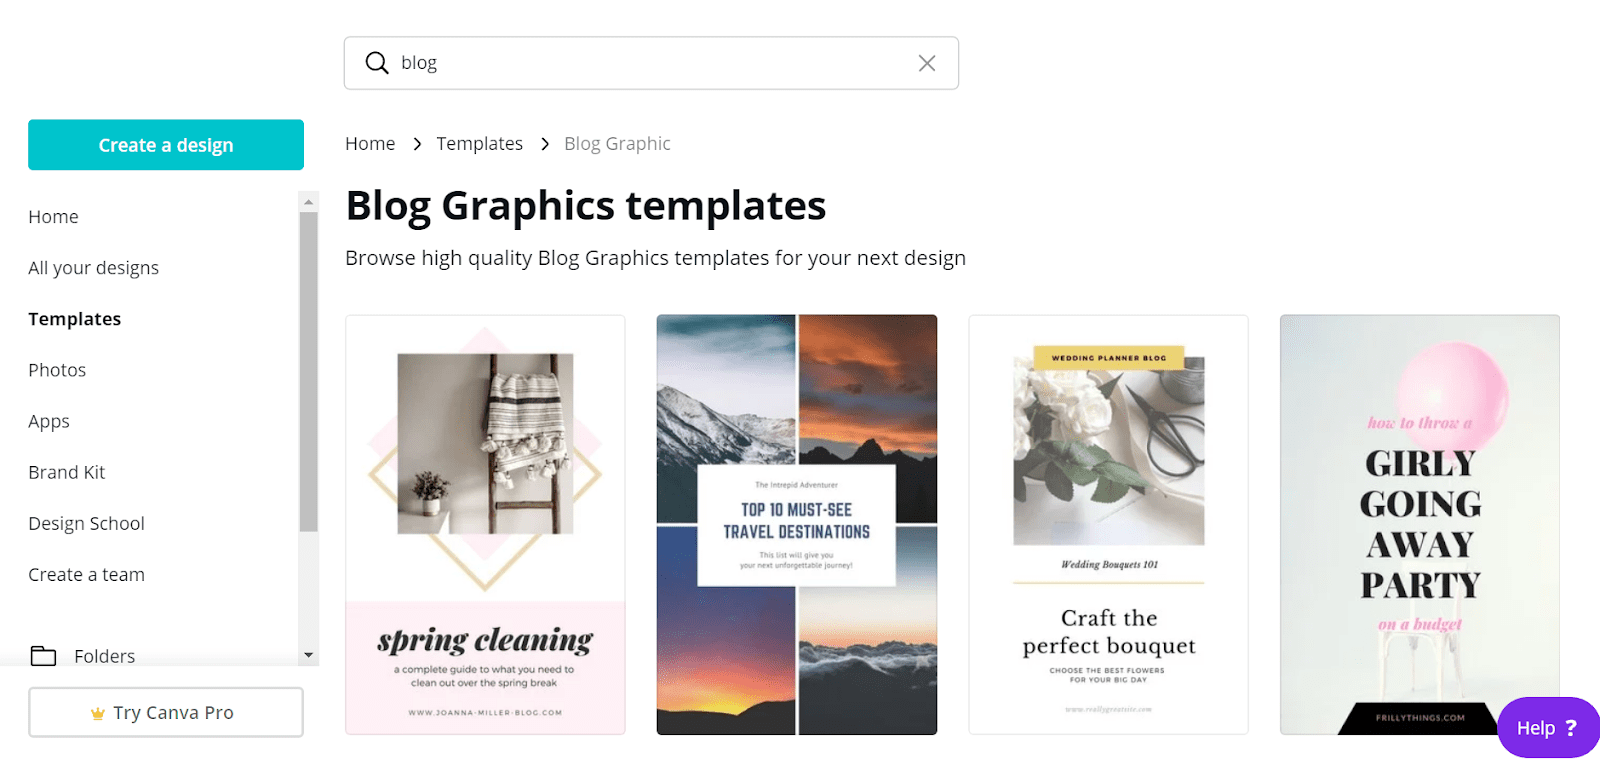 Creating an Image with Canva for WordPress